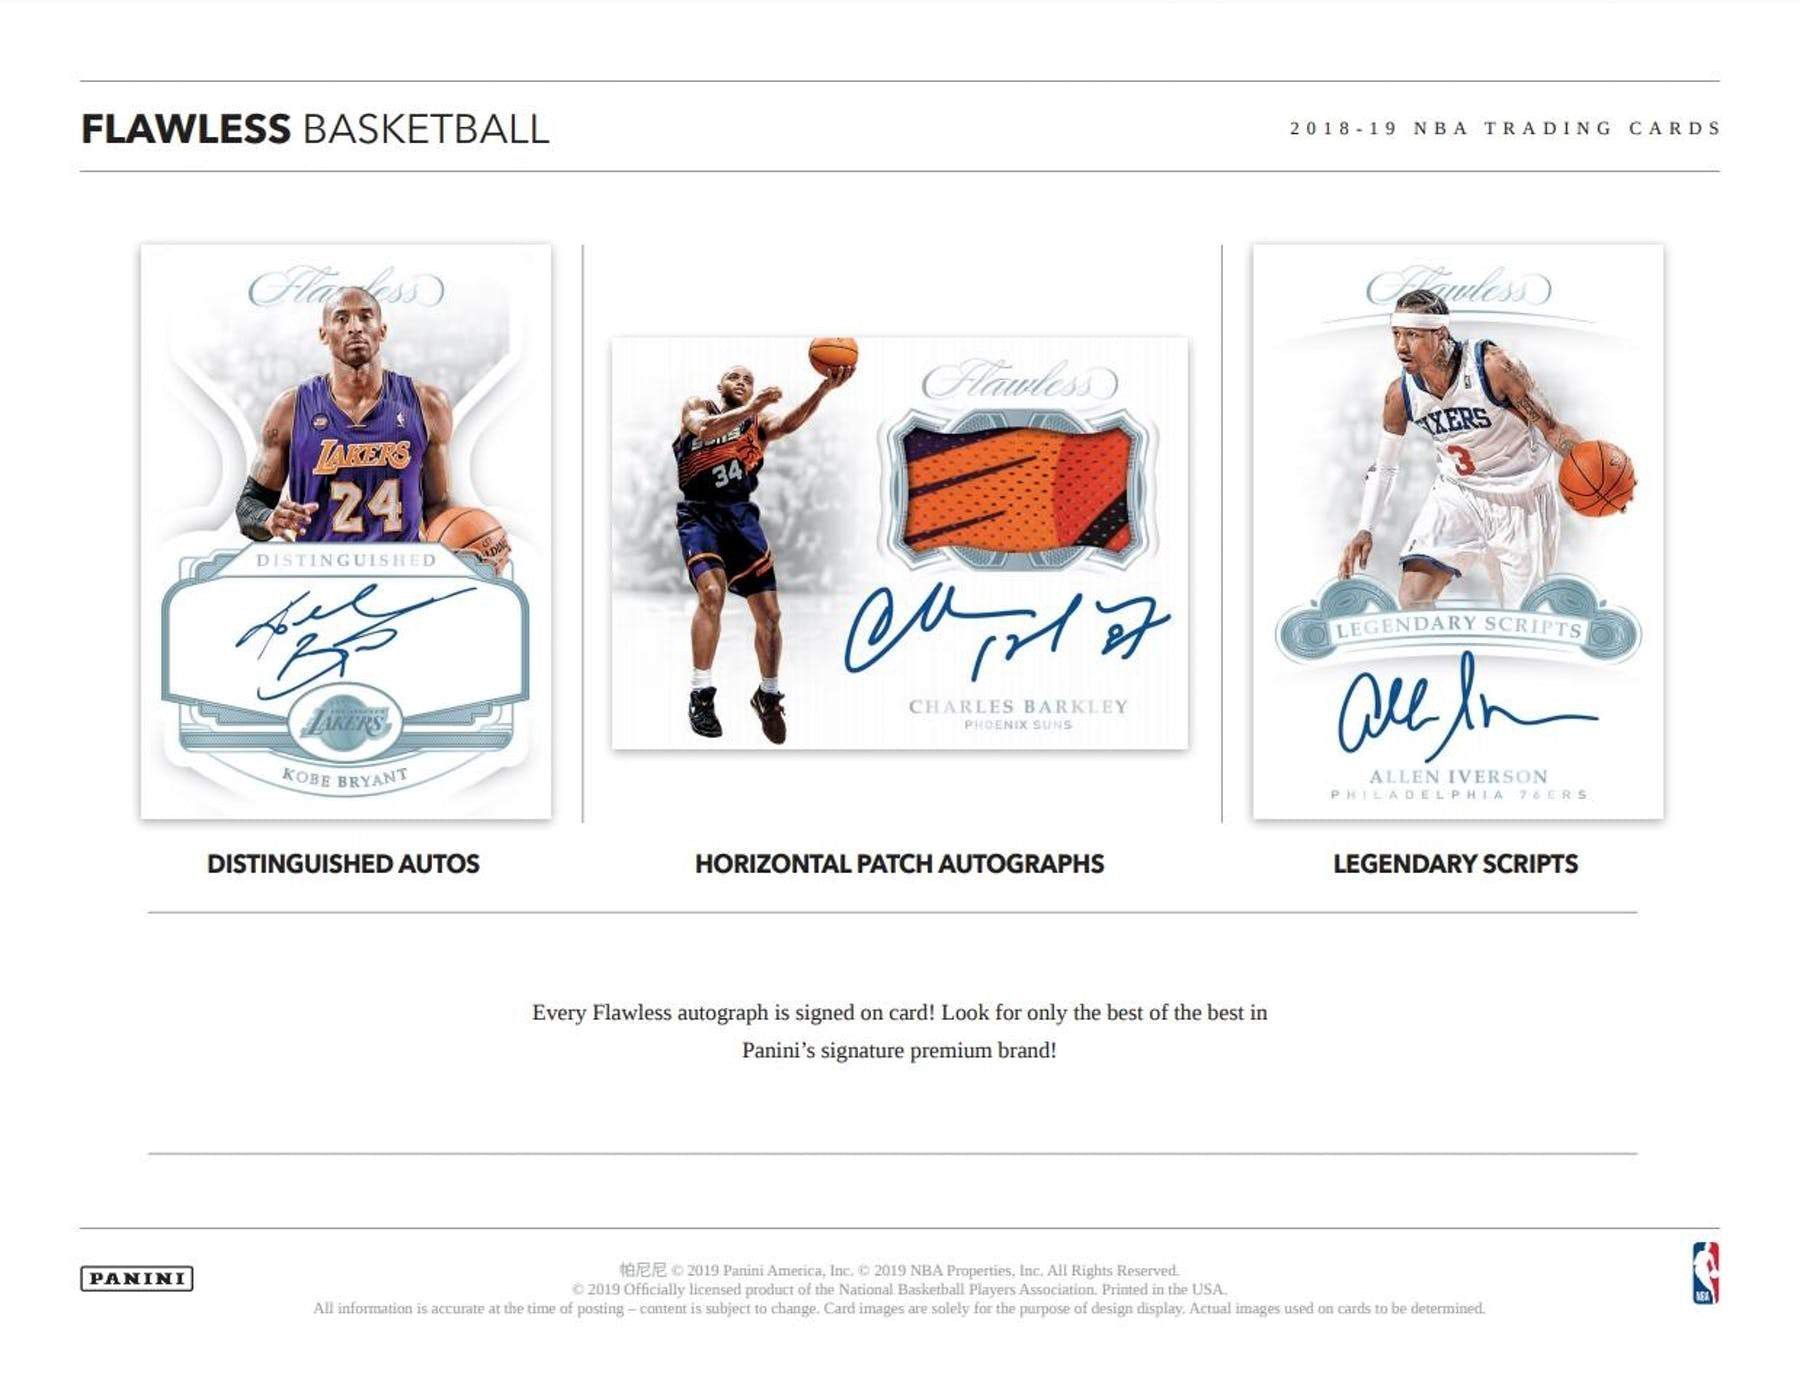 OFFICIAL GUIDE THE BEST SPORTS CARD BOXES TO BUY & INVEST